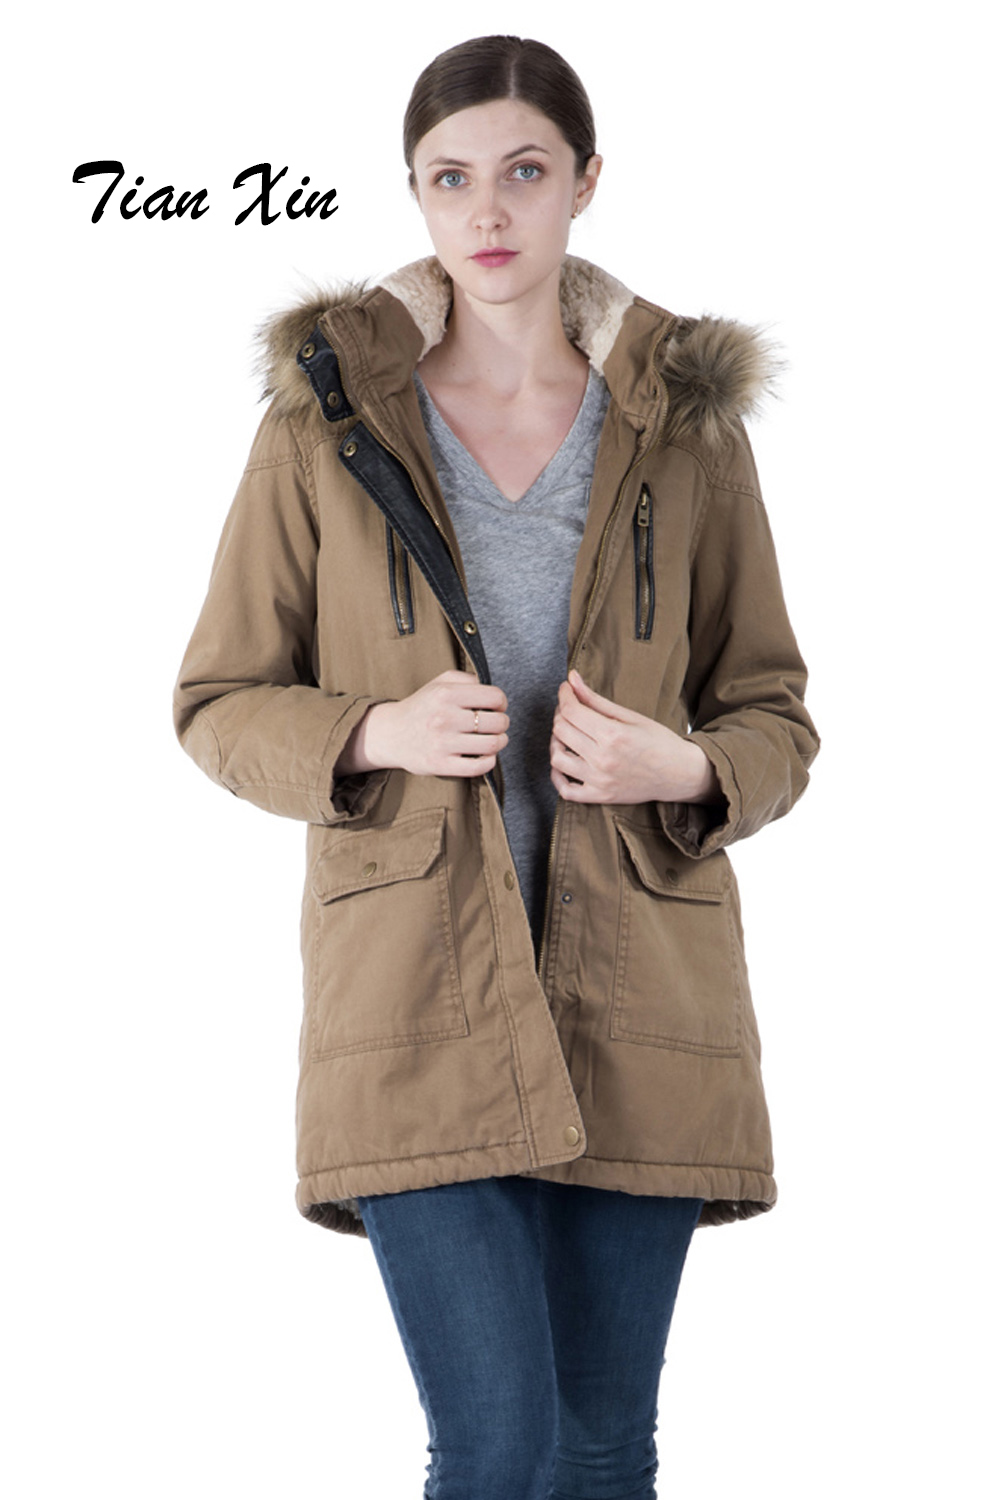 Women Winter Outwear Coat Hooded Fleece Lined Zipper Hooded Parka Flap Pocket Long Sleeves Cotton Parka hooded checked borg lined coat